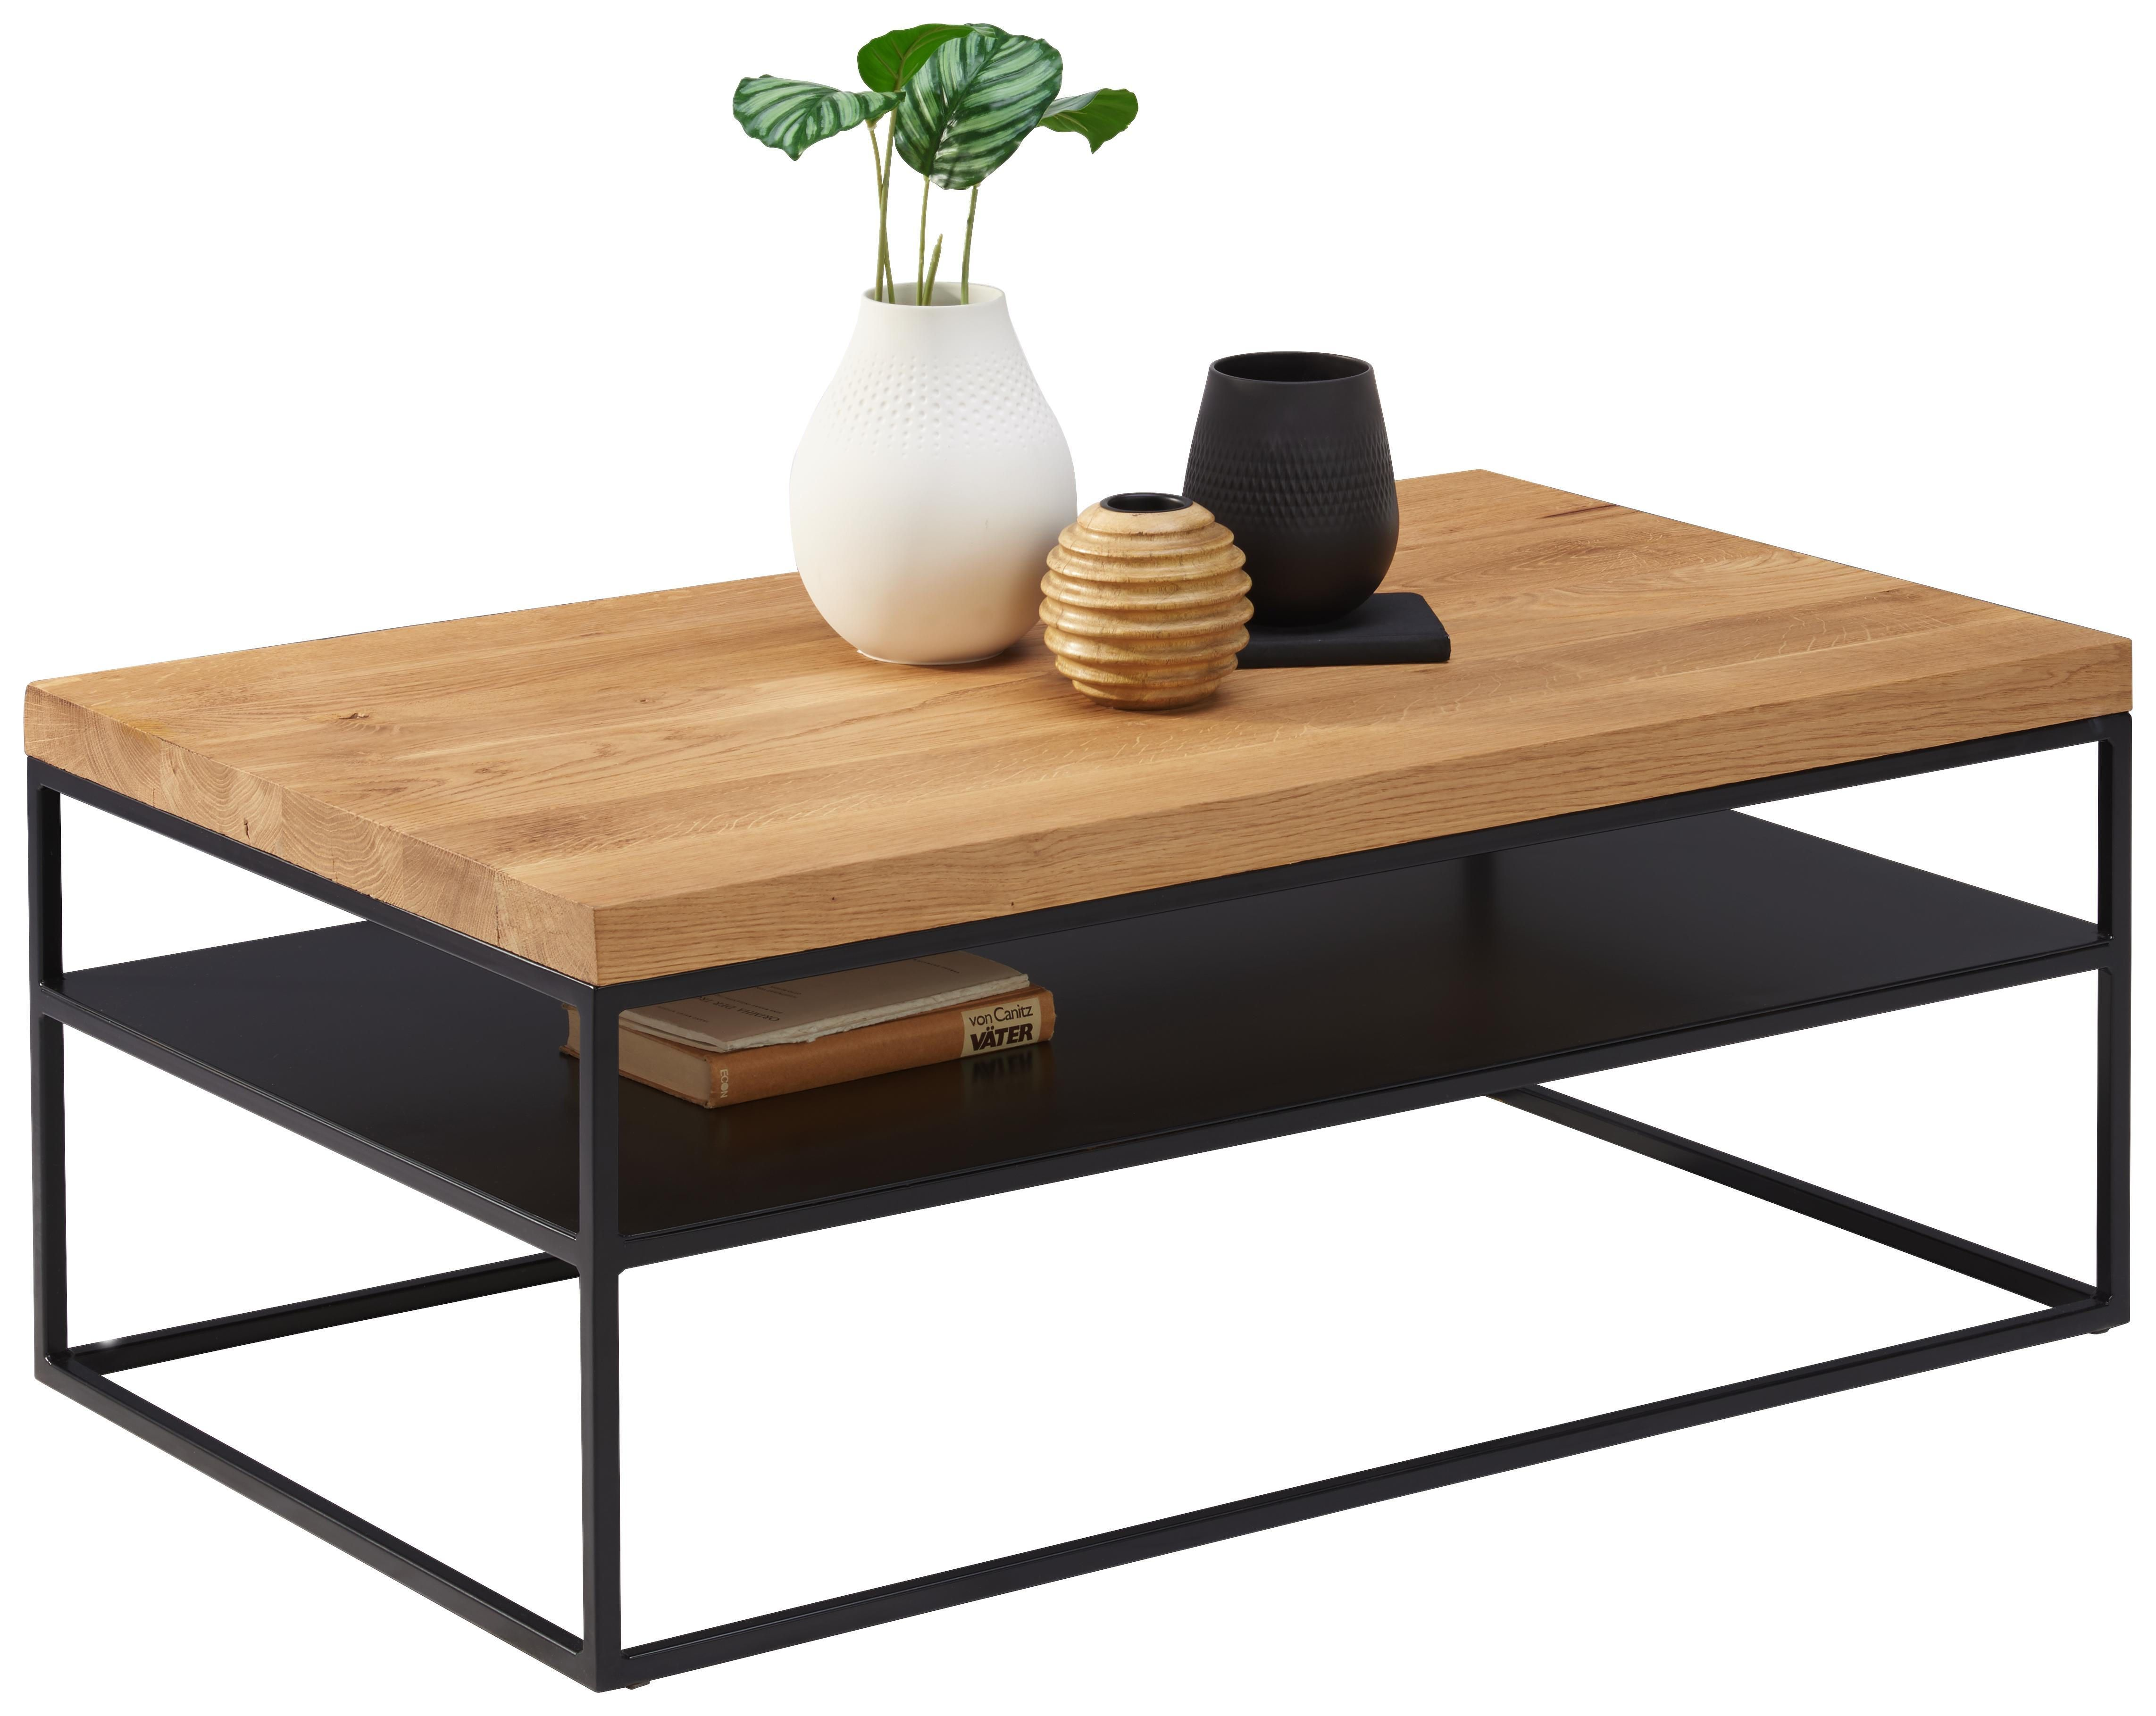 Couchtisch In Holz Metall 100 60 36 Cm Online Kaufen Xxxlutz Couchtisch Holz Kaufen Metall Online Vorhangewohnzimm Coffee Table Table Modern Table